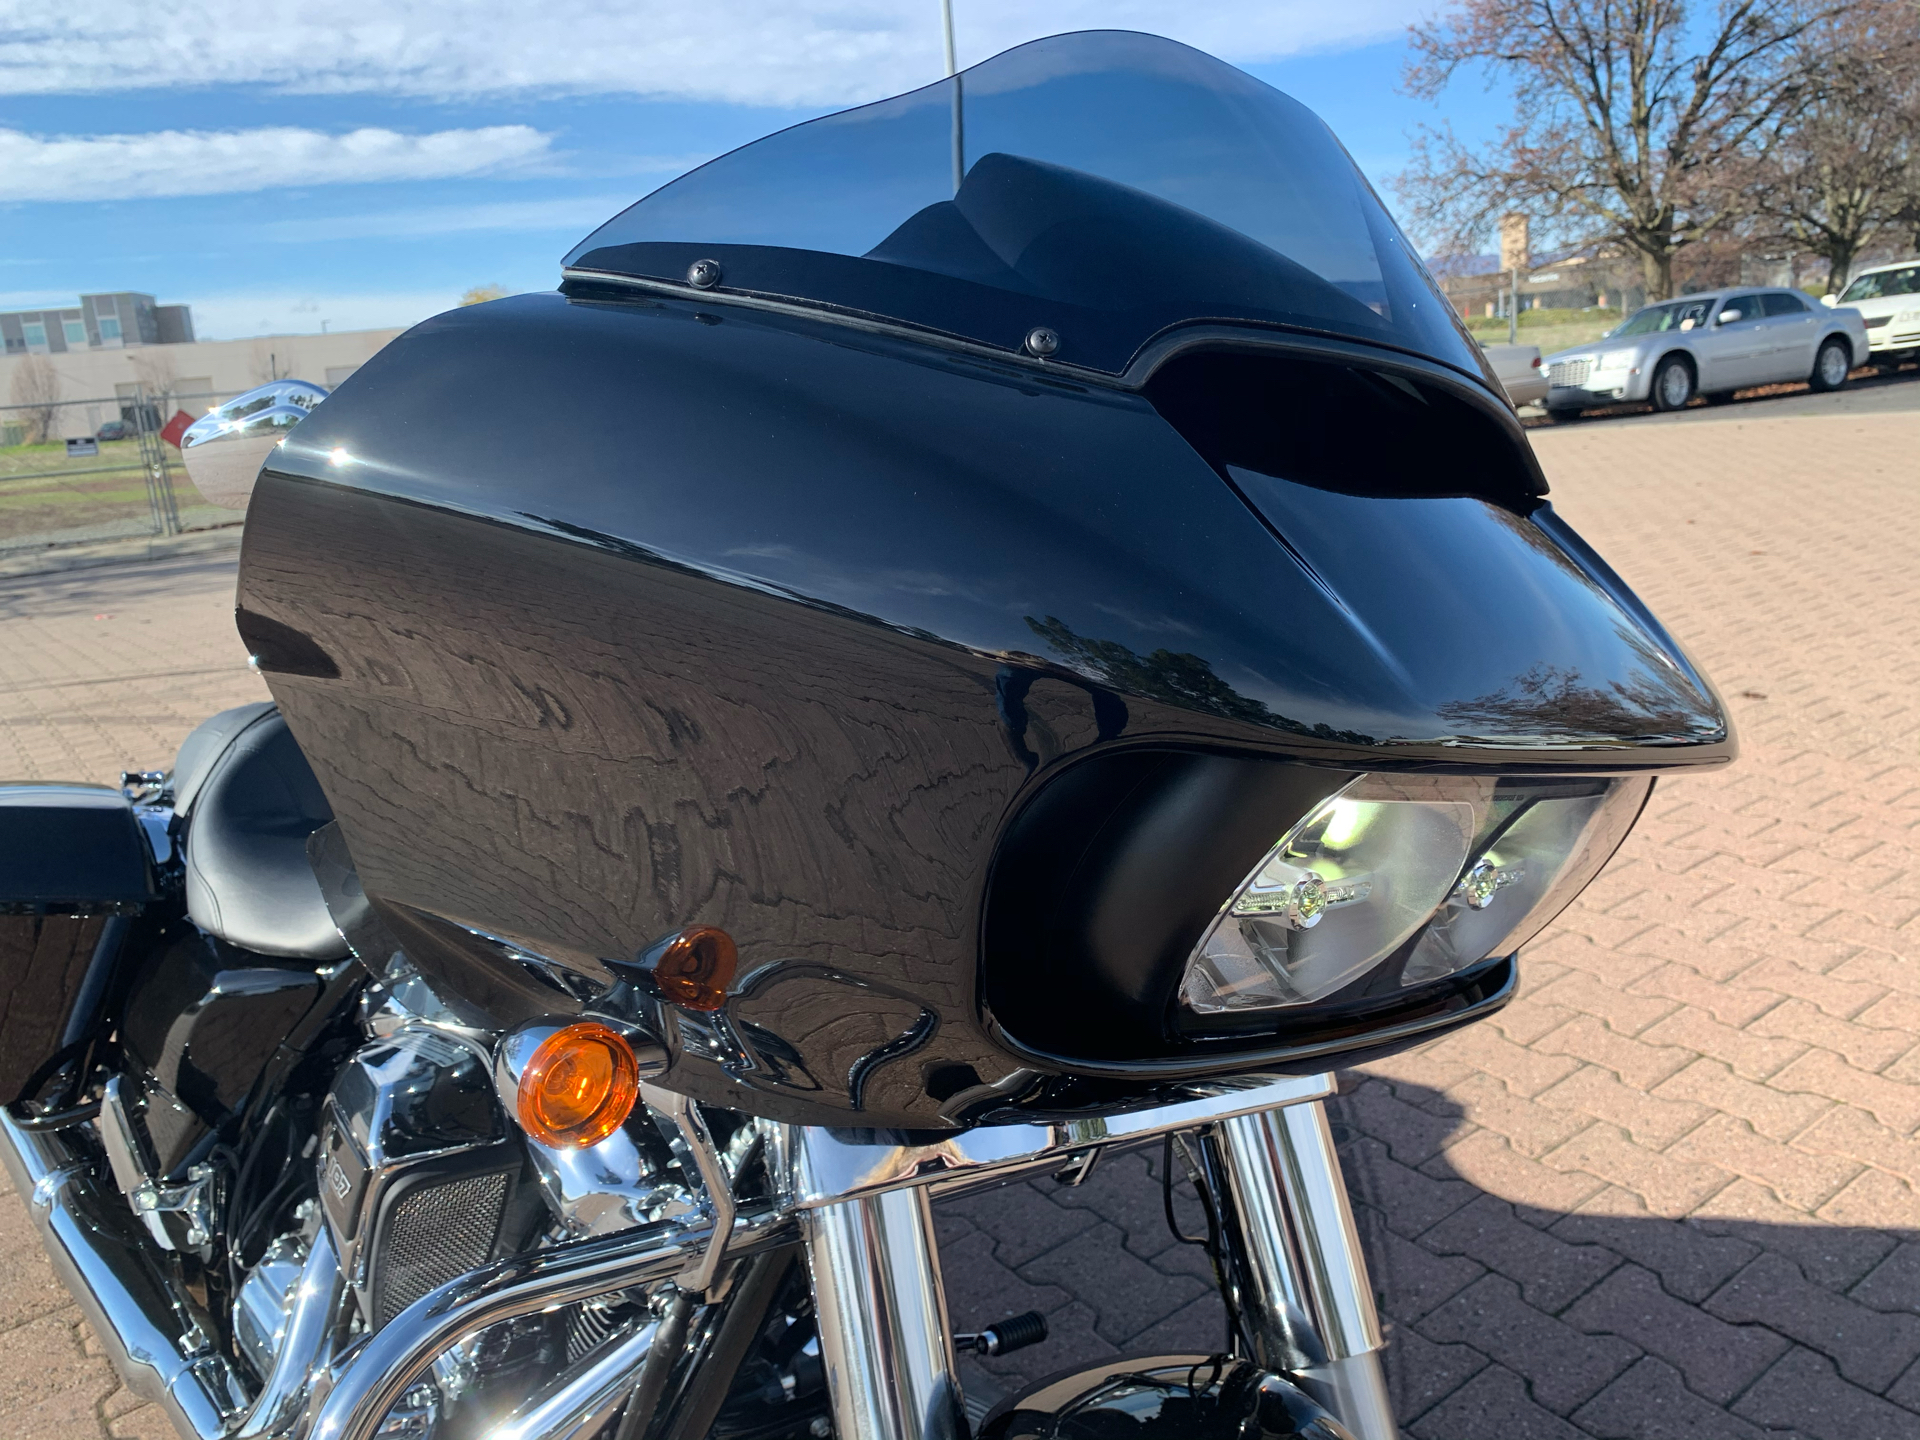 2021 Harley-Davidson Road Glide in Vacaville, California - Photo 5